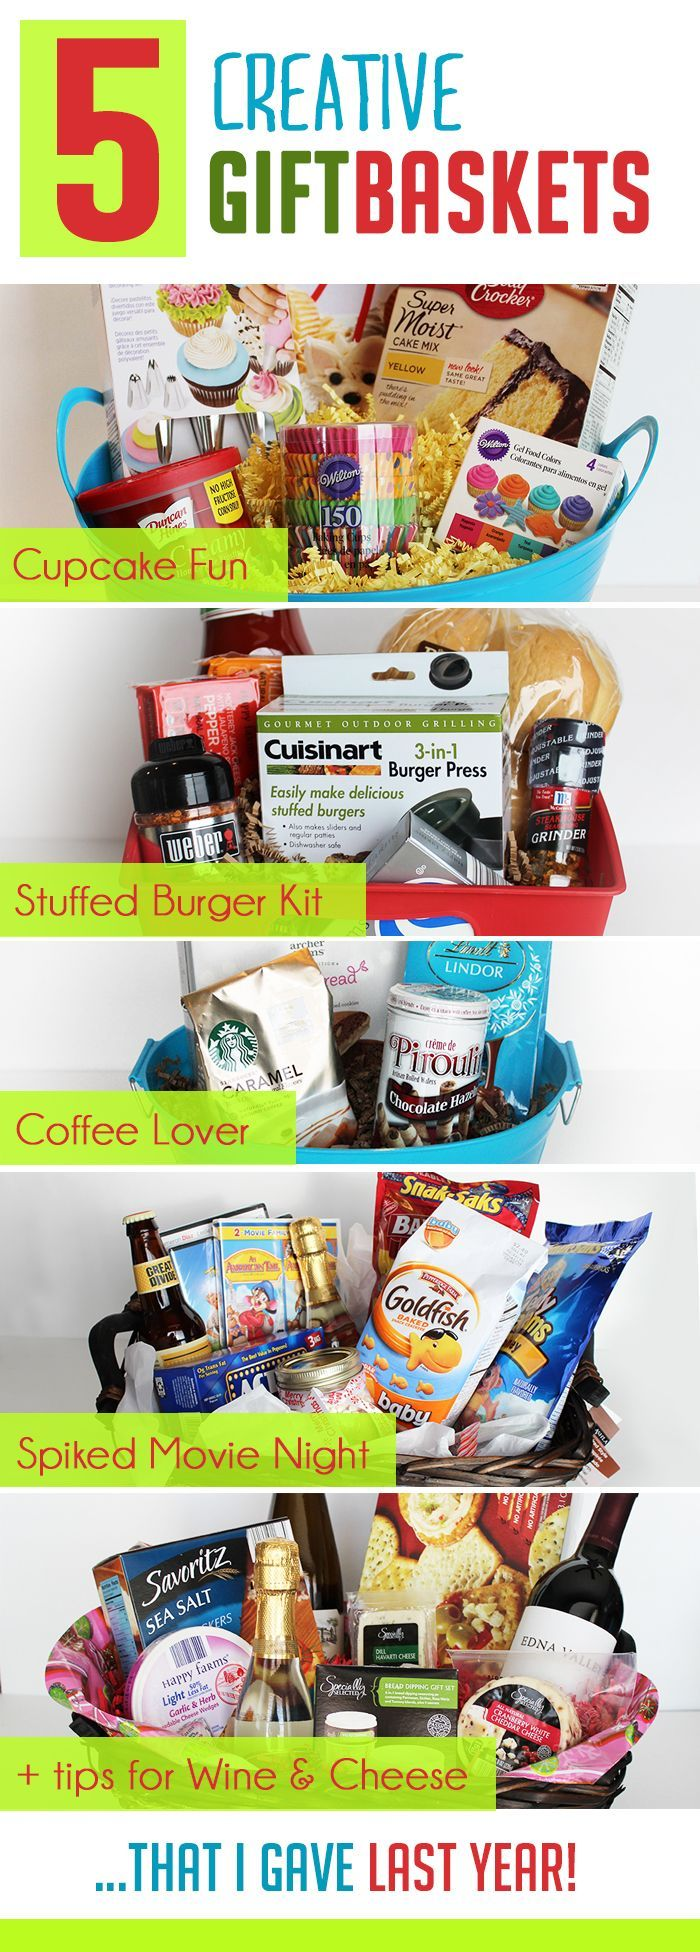 5 Creative DIY Christmas Gift Basket Ideas for friends, family & office!